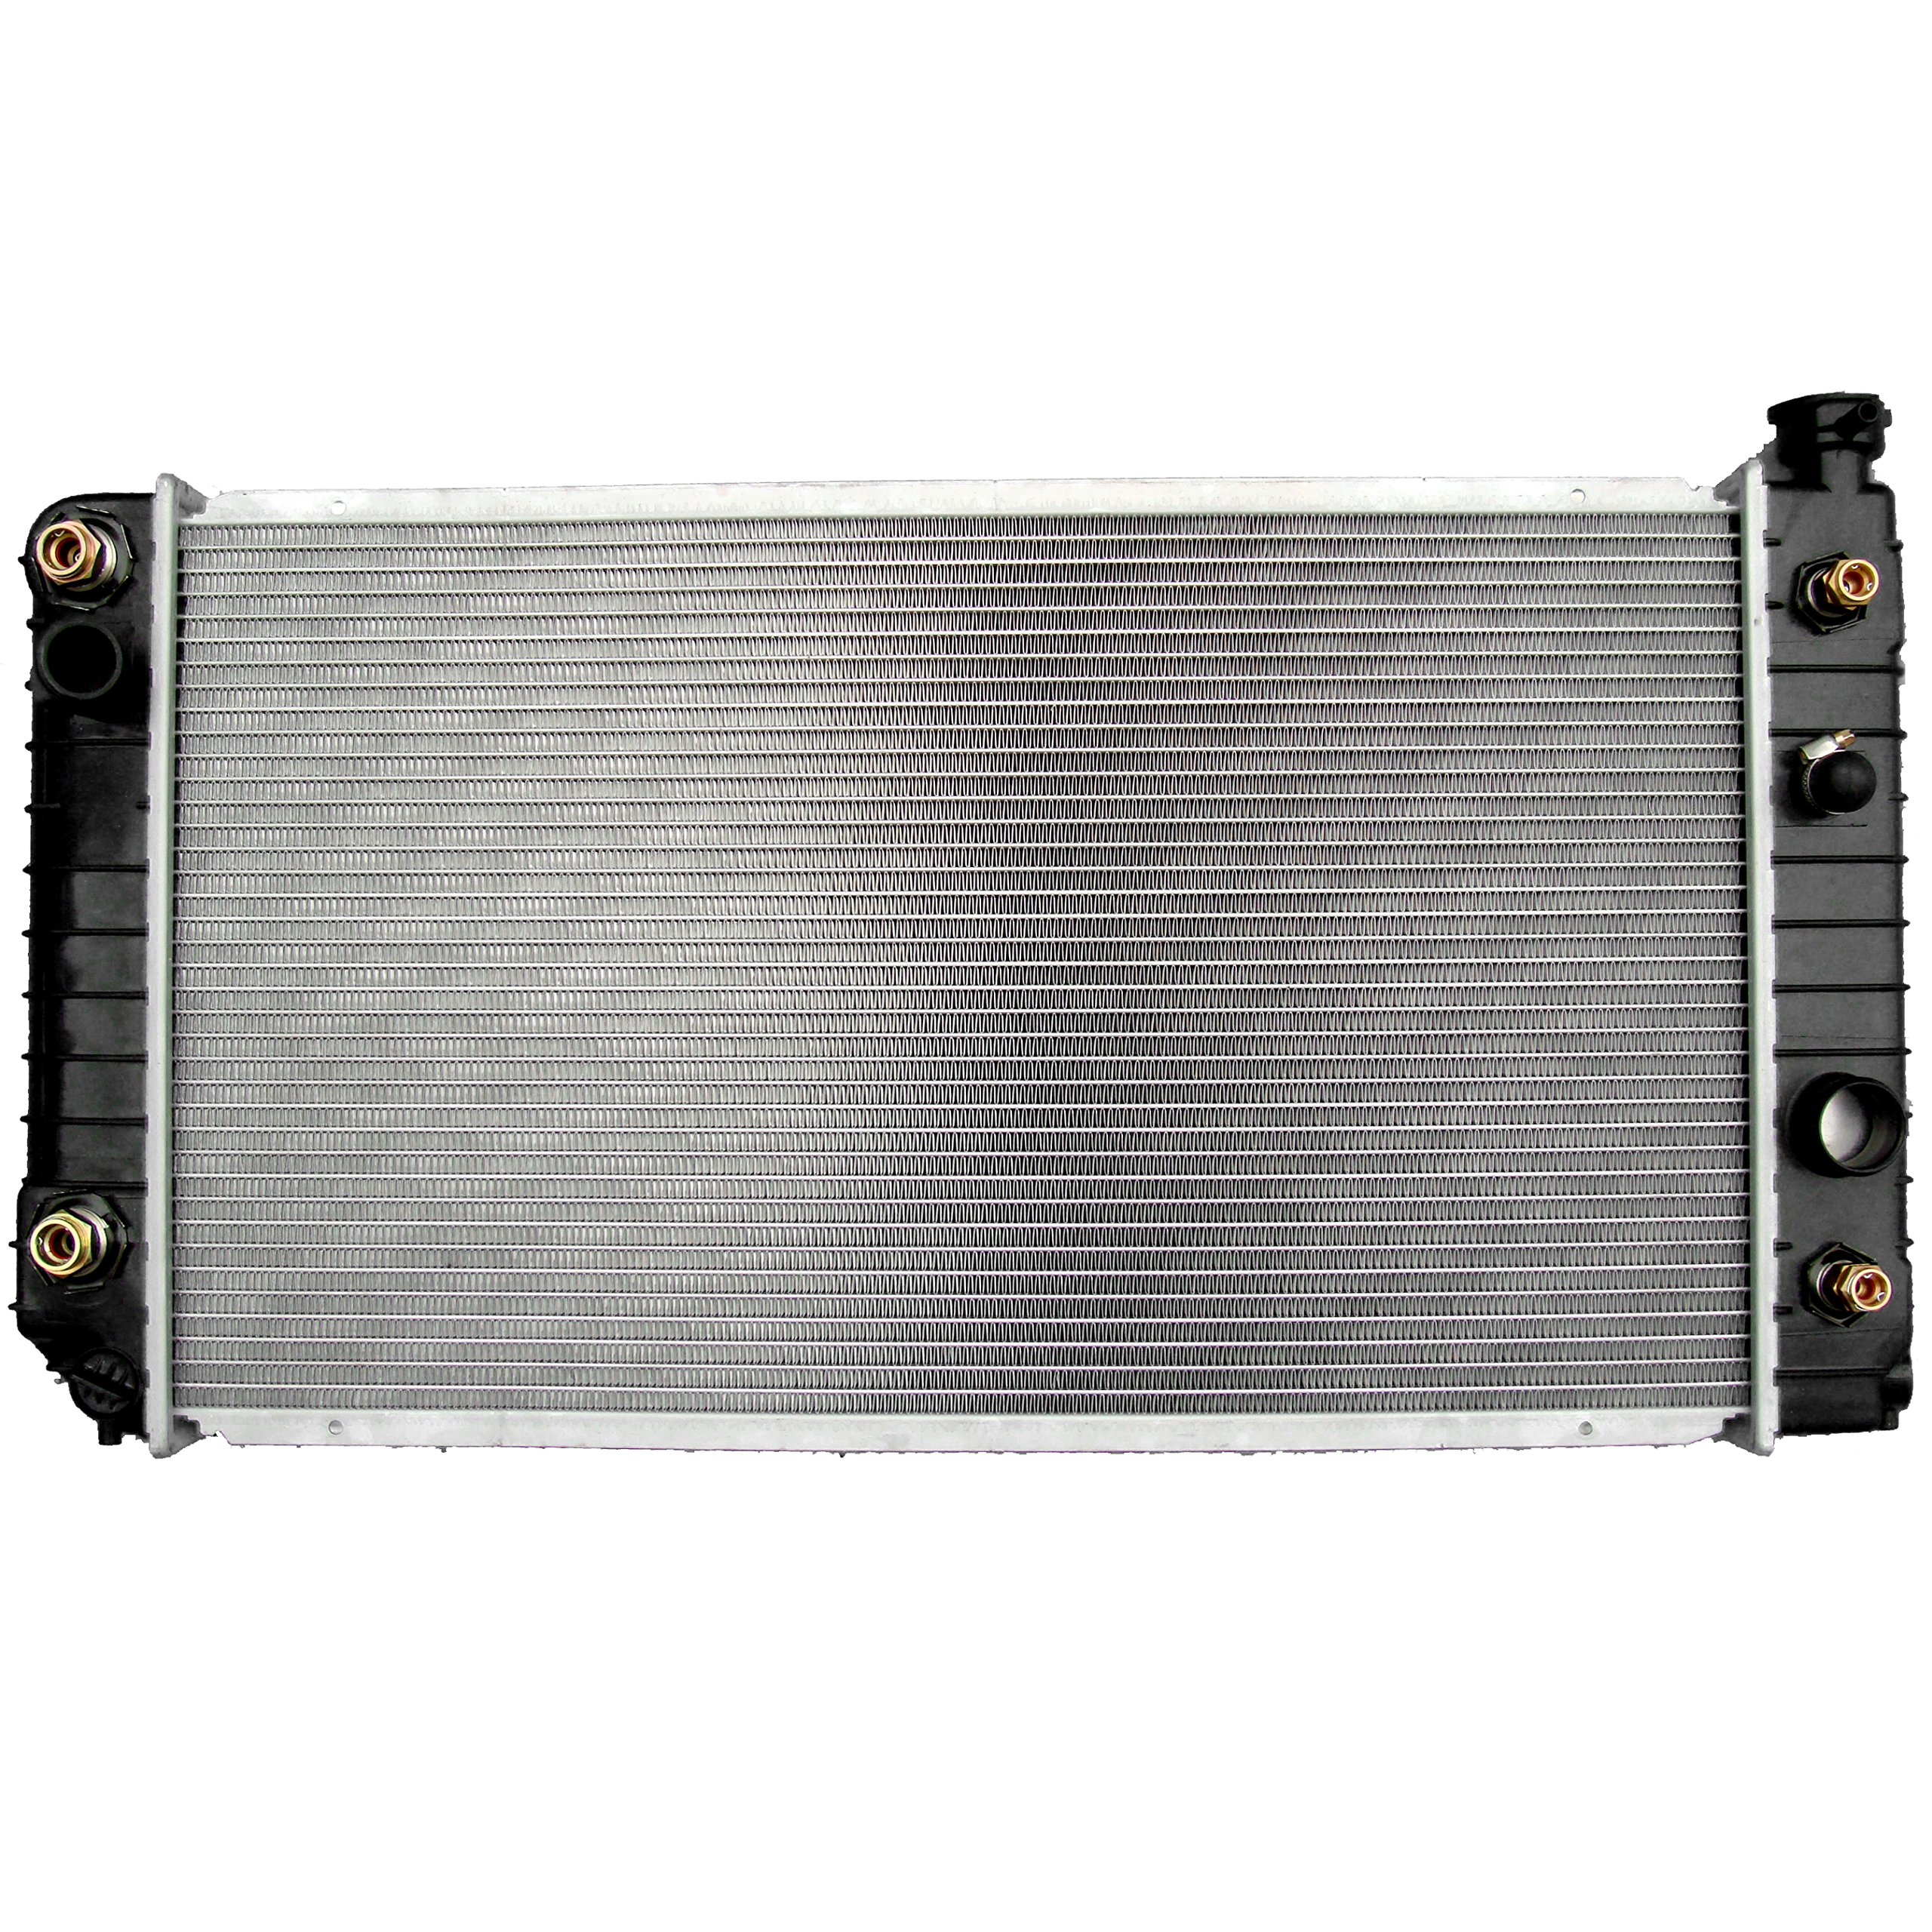 ECCPP 0705 Radiator fits for 1991-1993 GMC Sonoma 4.3L 1988-1994 Chevrolet S10 4.3L 1994 GMC Jimmy Sport Utility 4-Door 4.3L